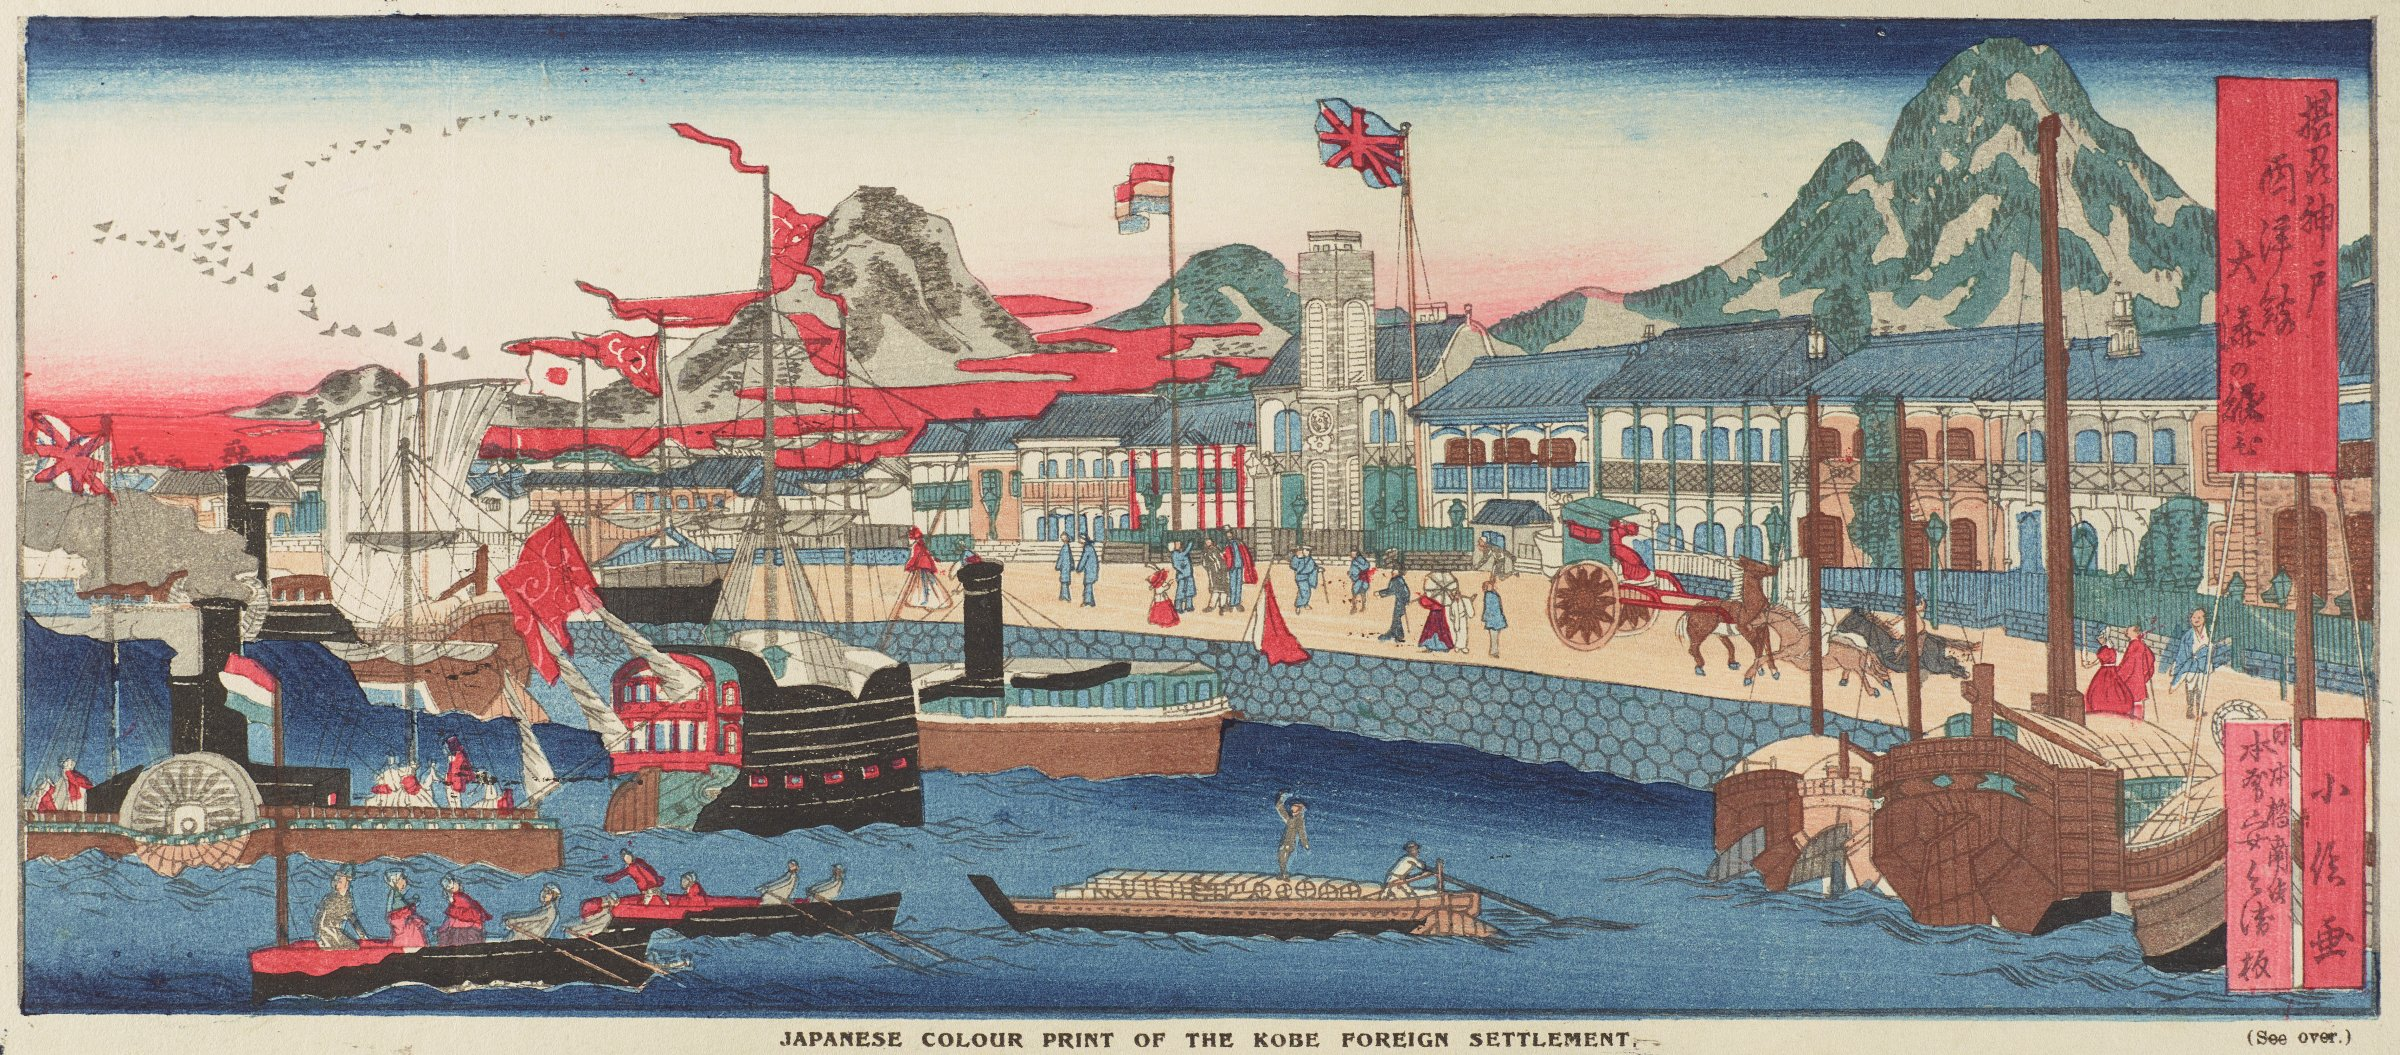 A View of the Foreign Settlement in Kobe, Utagawa Konobu I, ink and color on paper